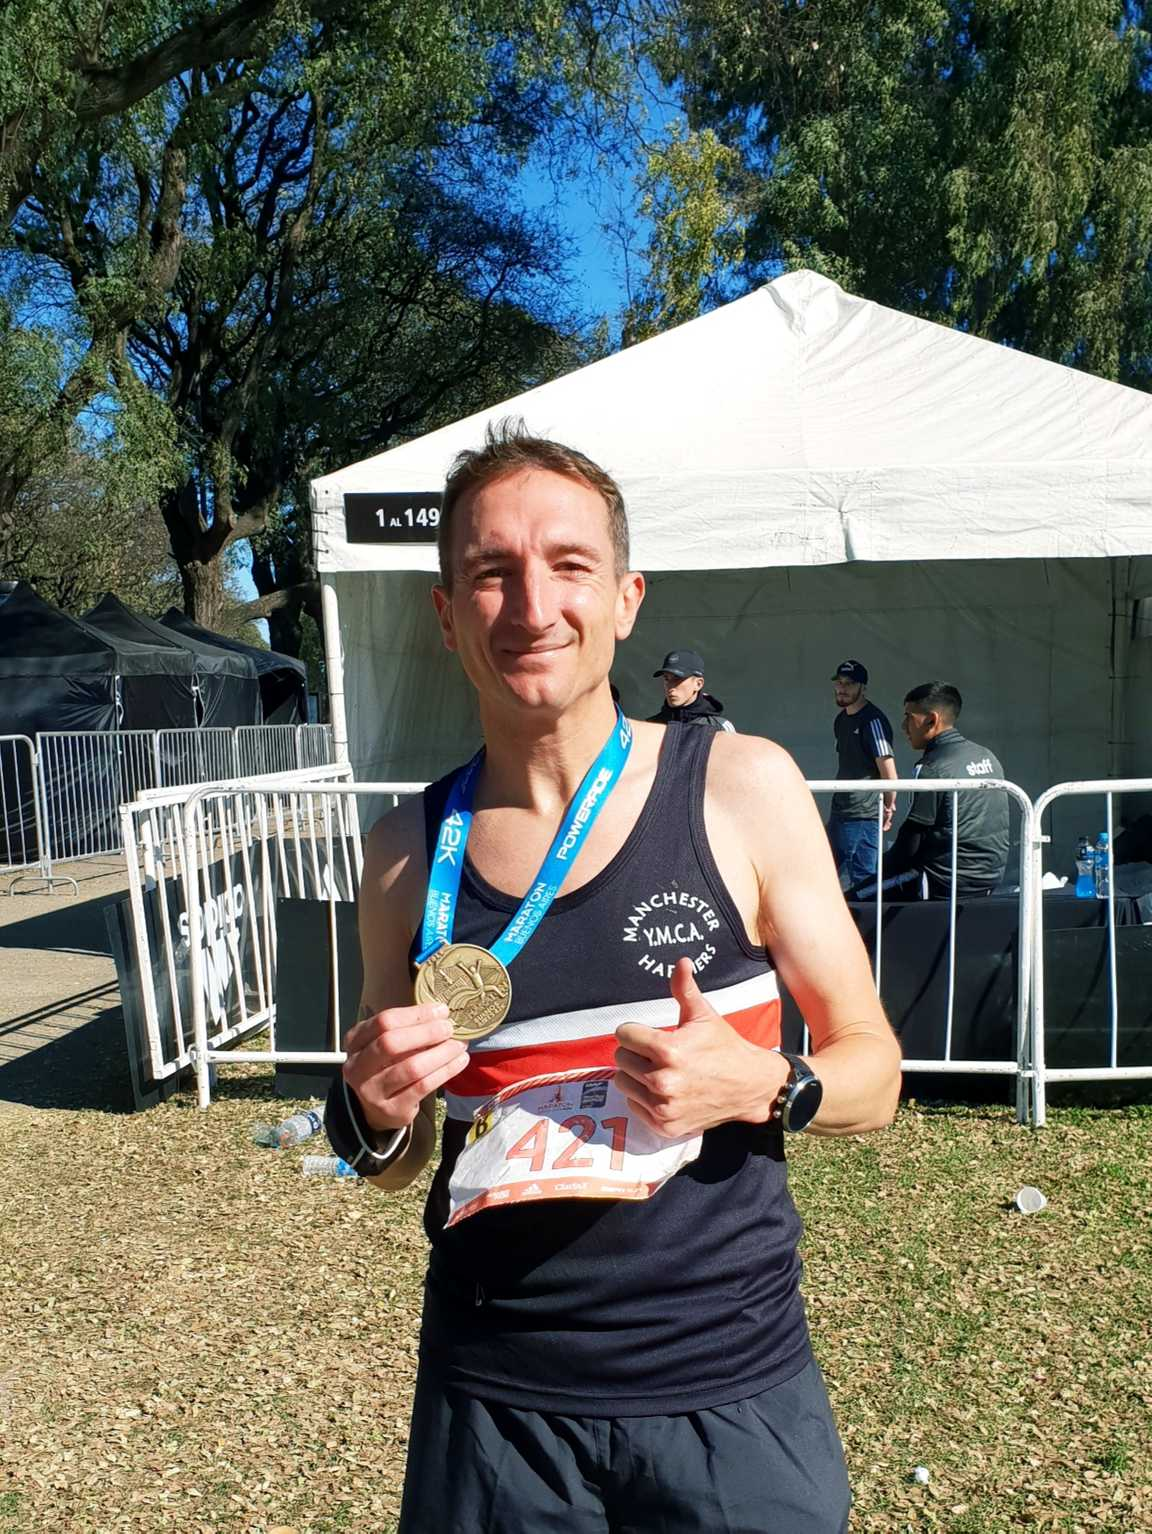 Craig Jones with his Buenos Aires marathon finisher's medal